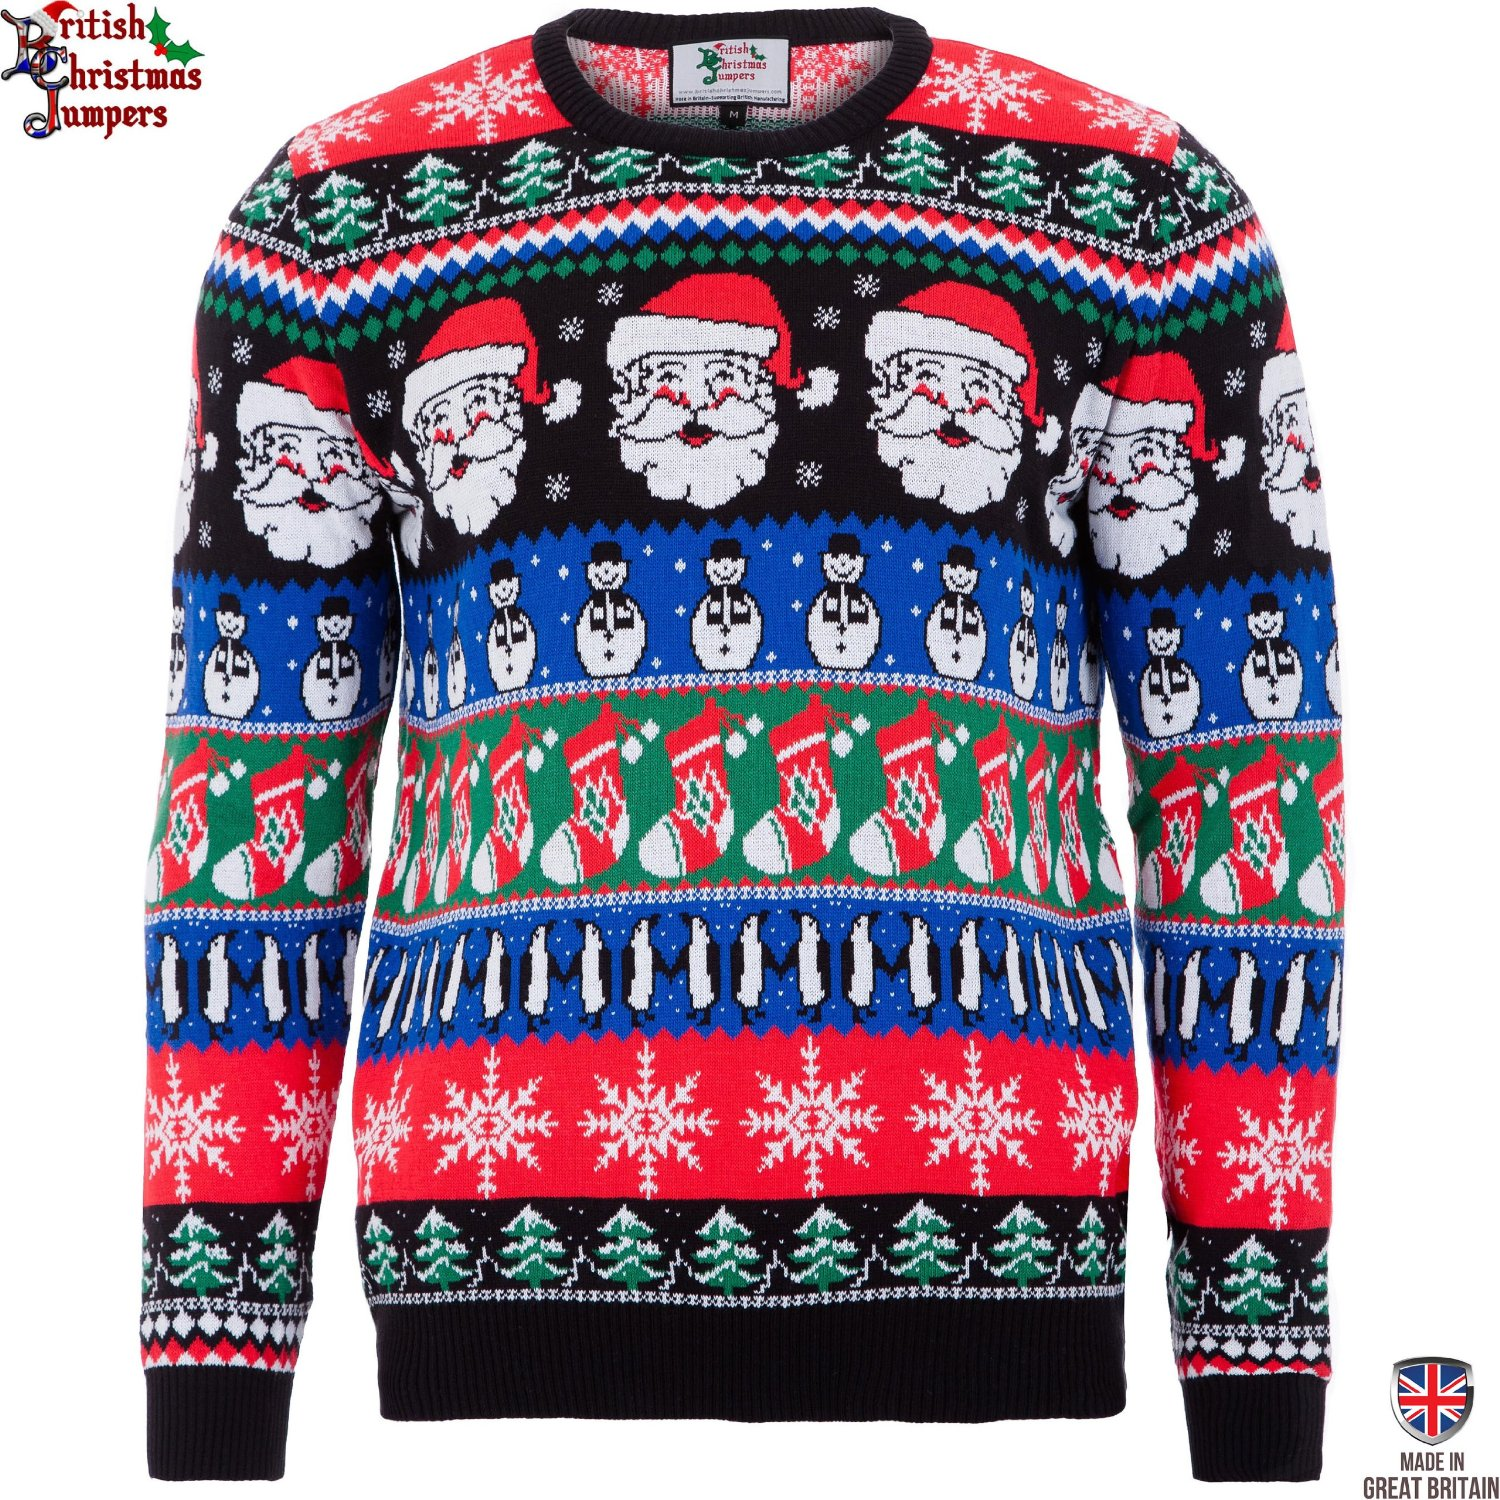 China Christmas Jumpers, China Christmas Jumpers Suppliers and Manufacturers Directory - Source a Large Selection of Christmas Jumpers Products at xxxxl jumper hoodies,christmas pajamas,christmas ornaments from China specialtysports.ga